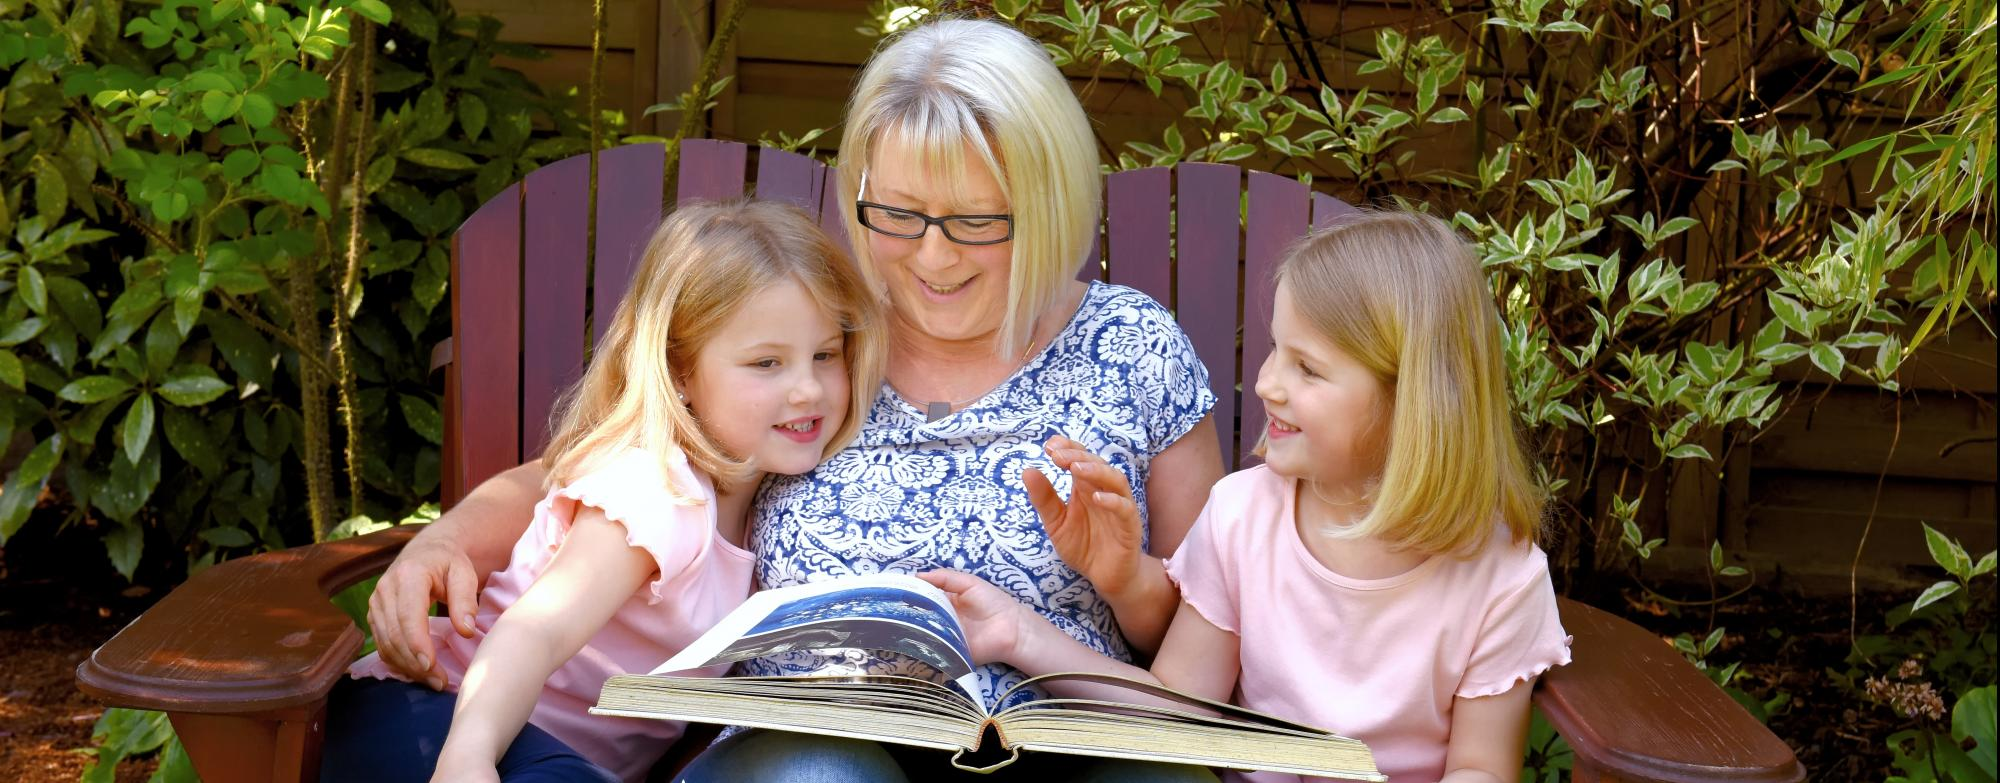 Image of Grandparent with two grandchildren looking at a book